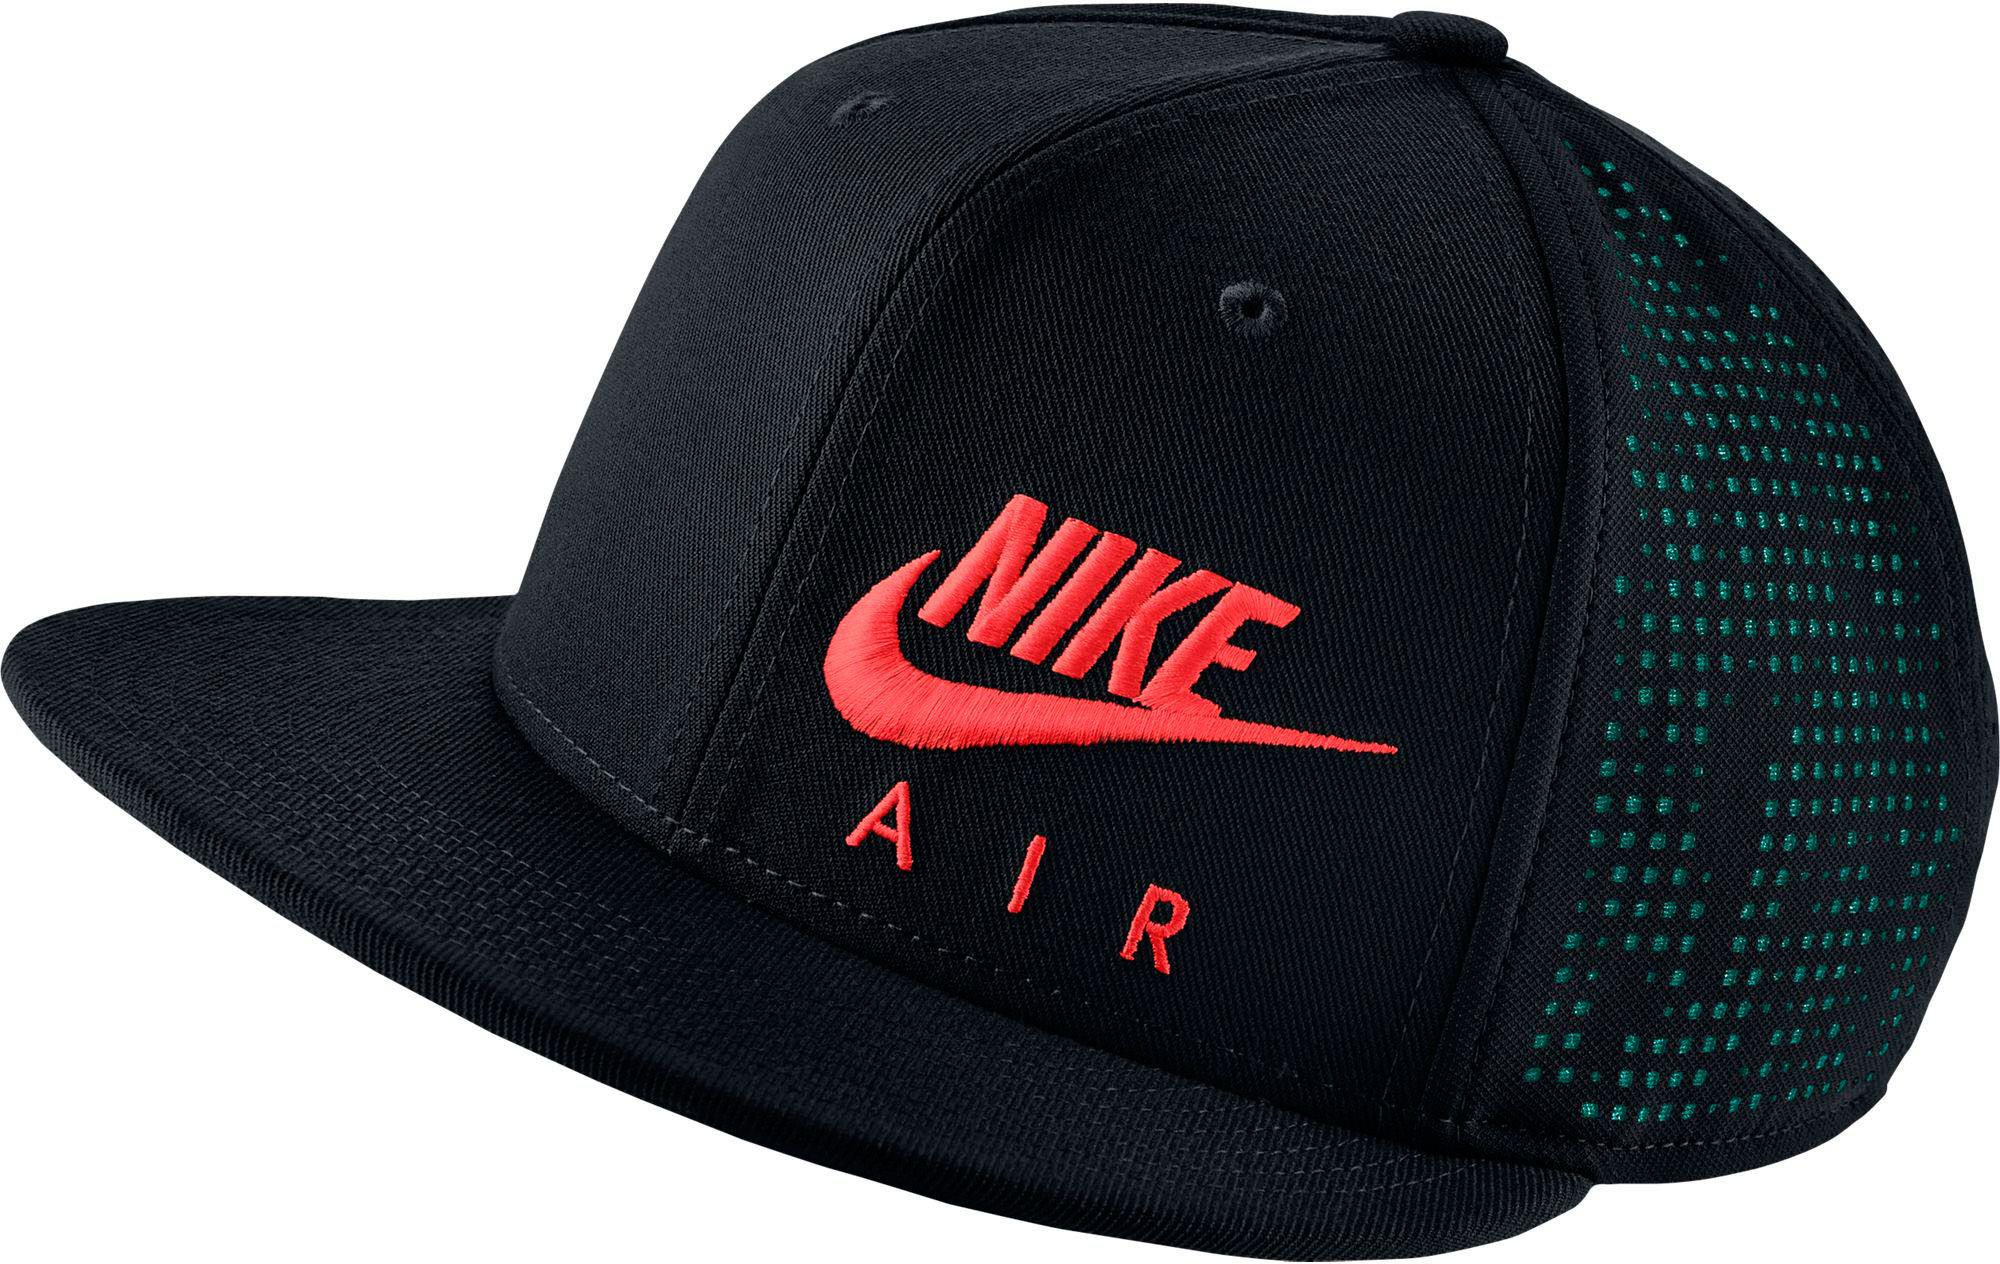 22d97bf0118 ... usa lyst nike air hybrid true adjustable snapback hat in black for men  6becd 5f5f8